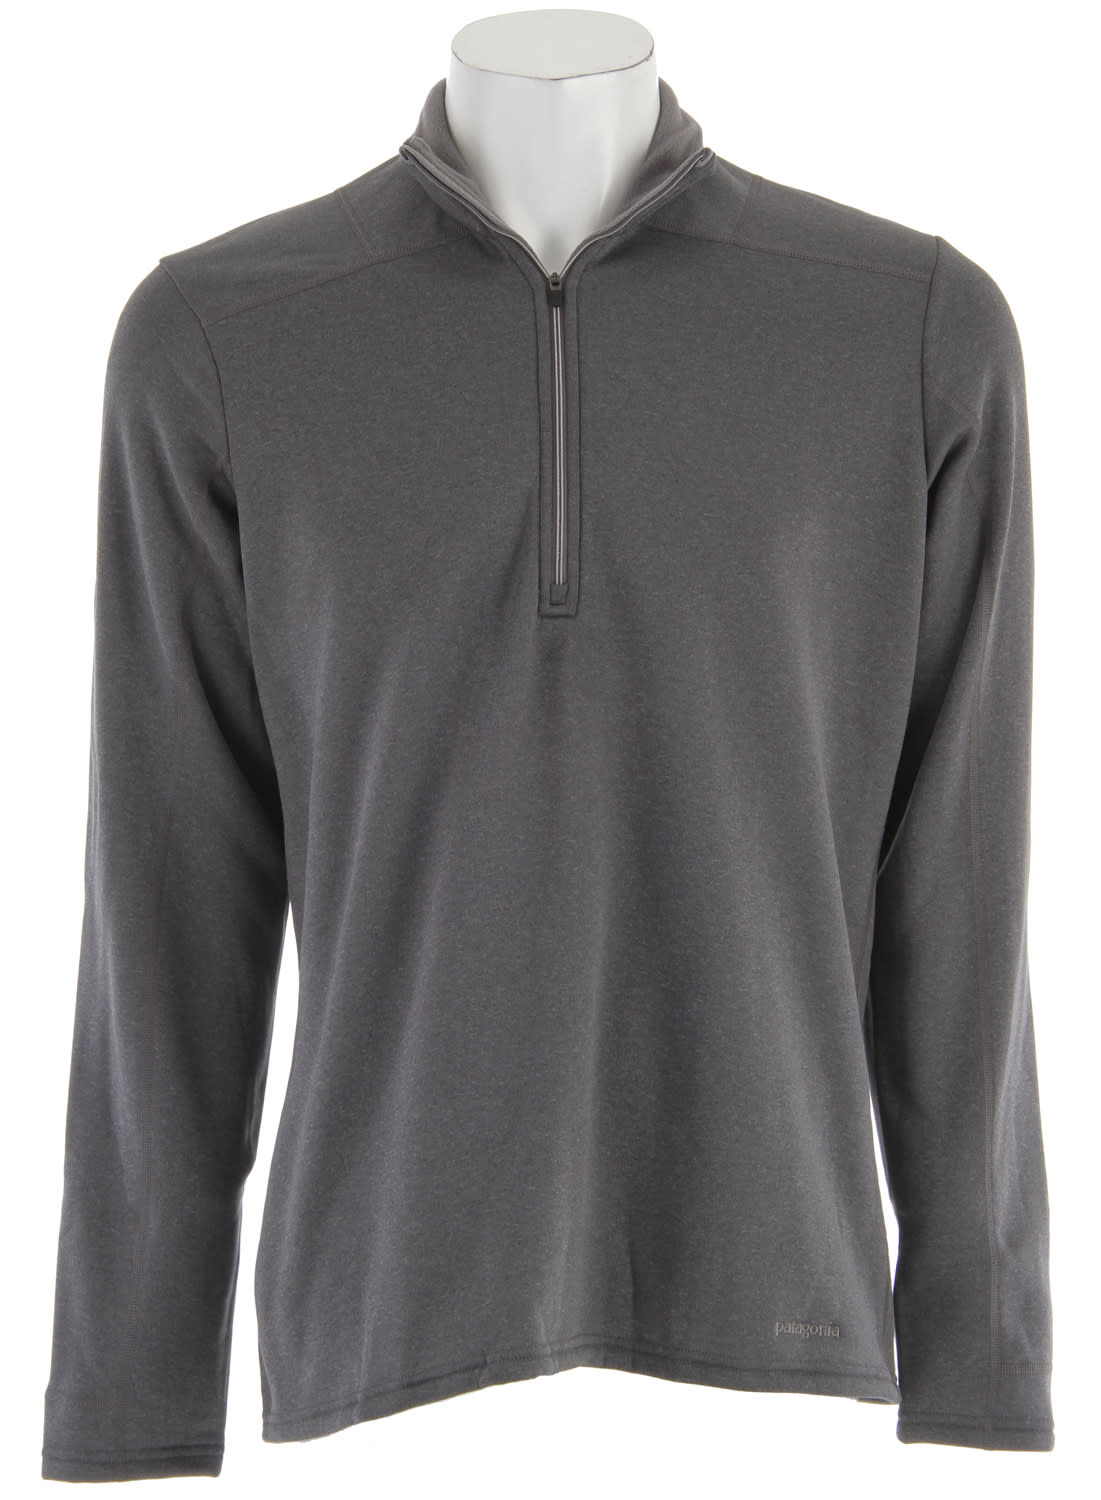 Patagonia Capilene 4 Expedition Weight Zip-Neck Baselayer Top Forge Grey - Narwhal Grey Xdye - Men's